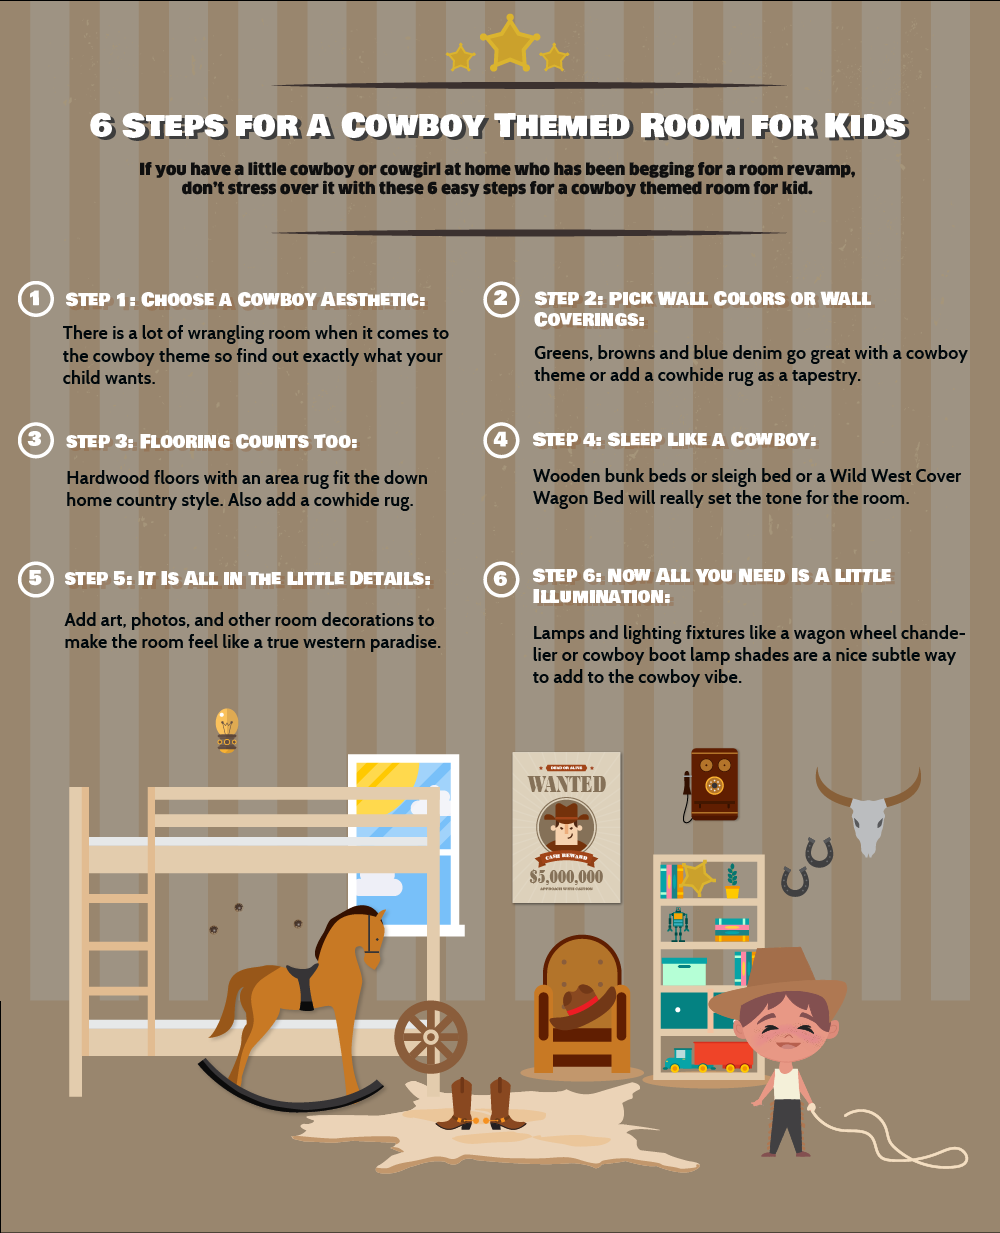 6 Steps for a Cowboy Themed Room for Kids